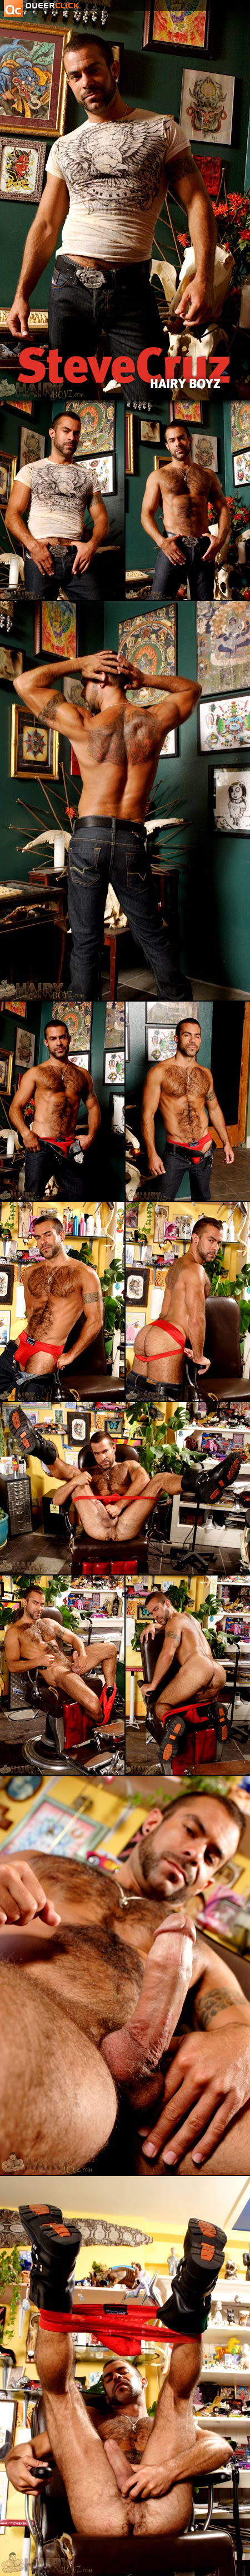 Steve Cruz at HairyBoyz.com